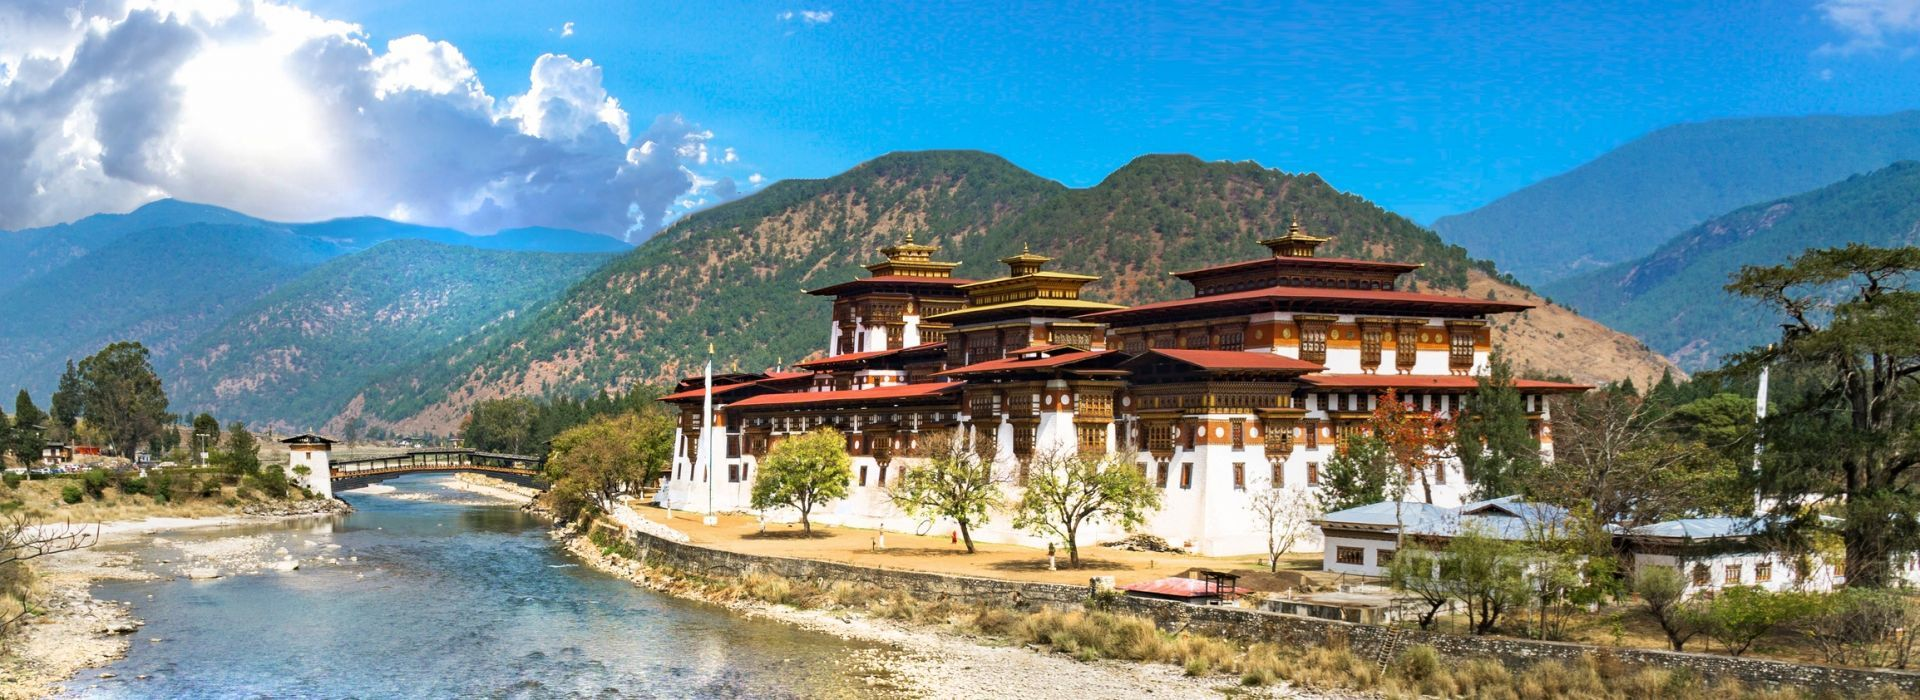 Sightseeing, attractions, culture and history Tours in Bhutan